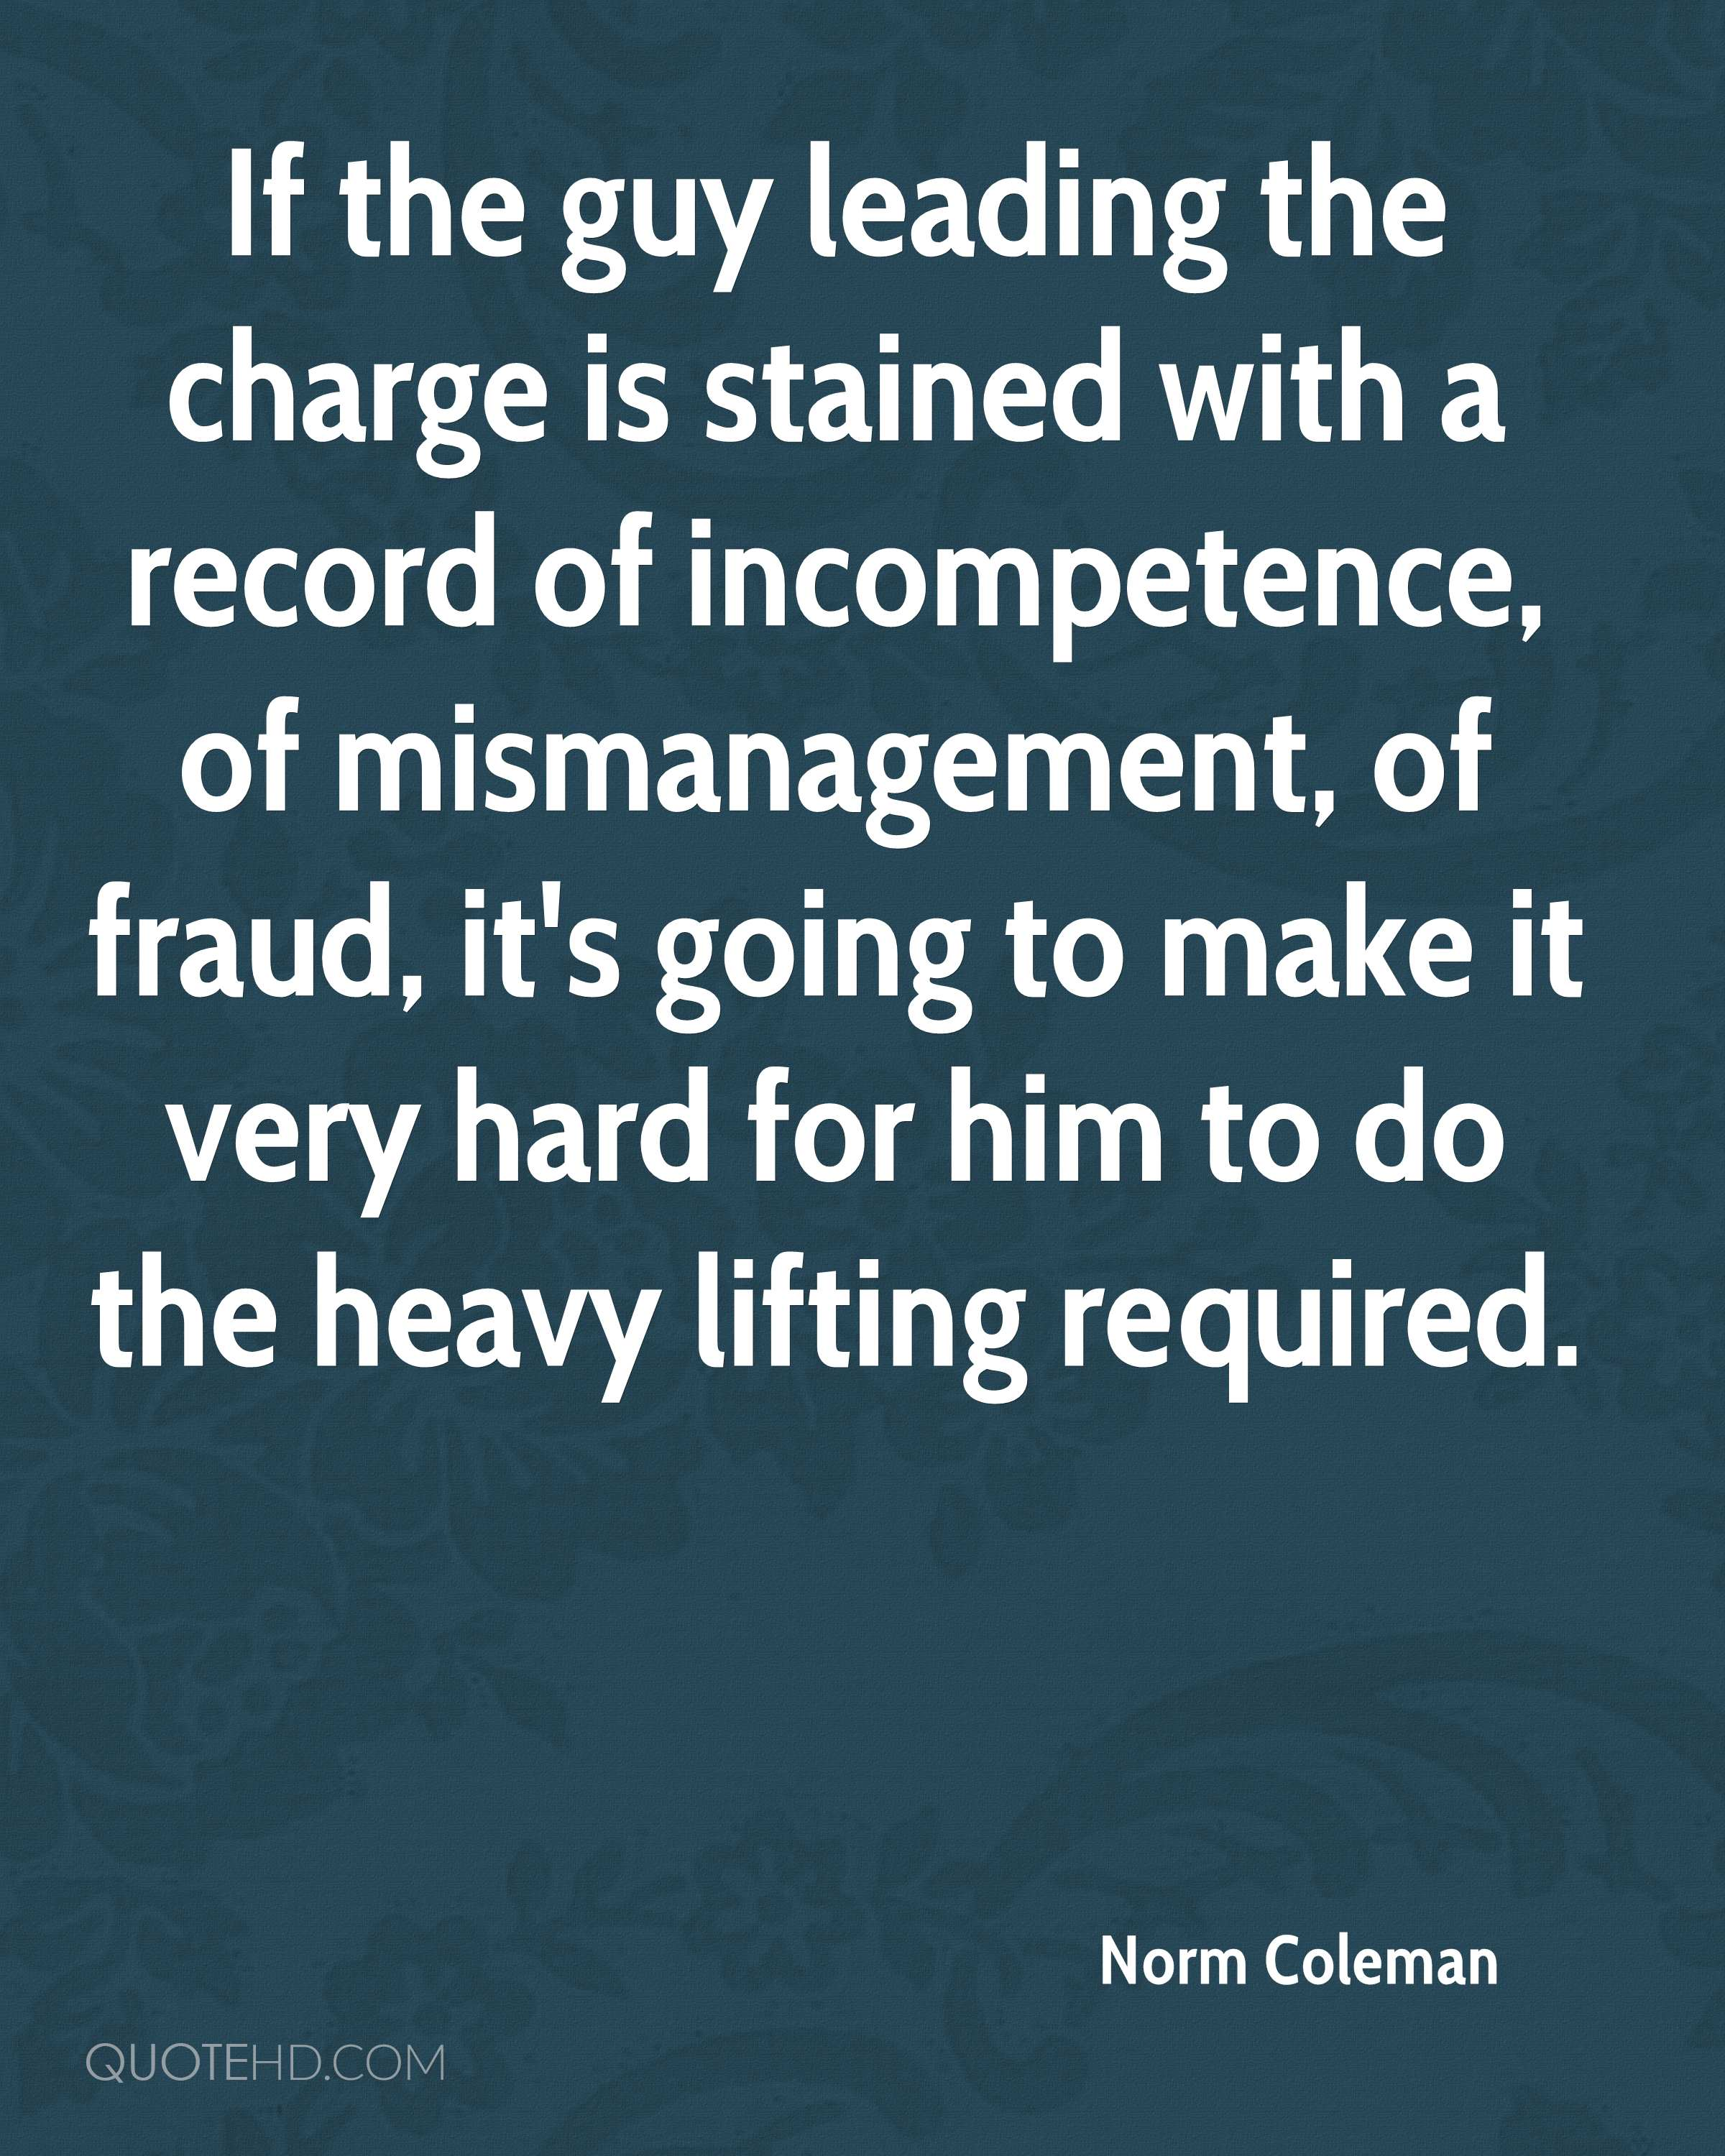 If the guy leading the charge is stained with a record of incompetence, of mismanagement, of fraud, it's going to make it very hard for him to do the heavy lifting required.